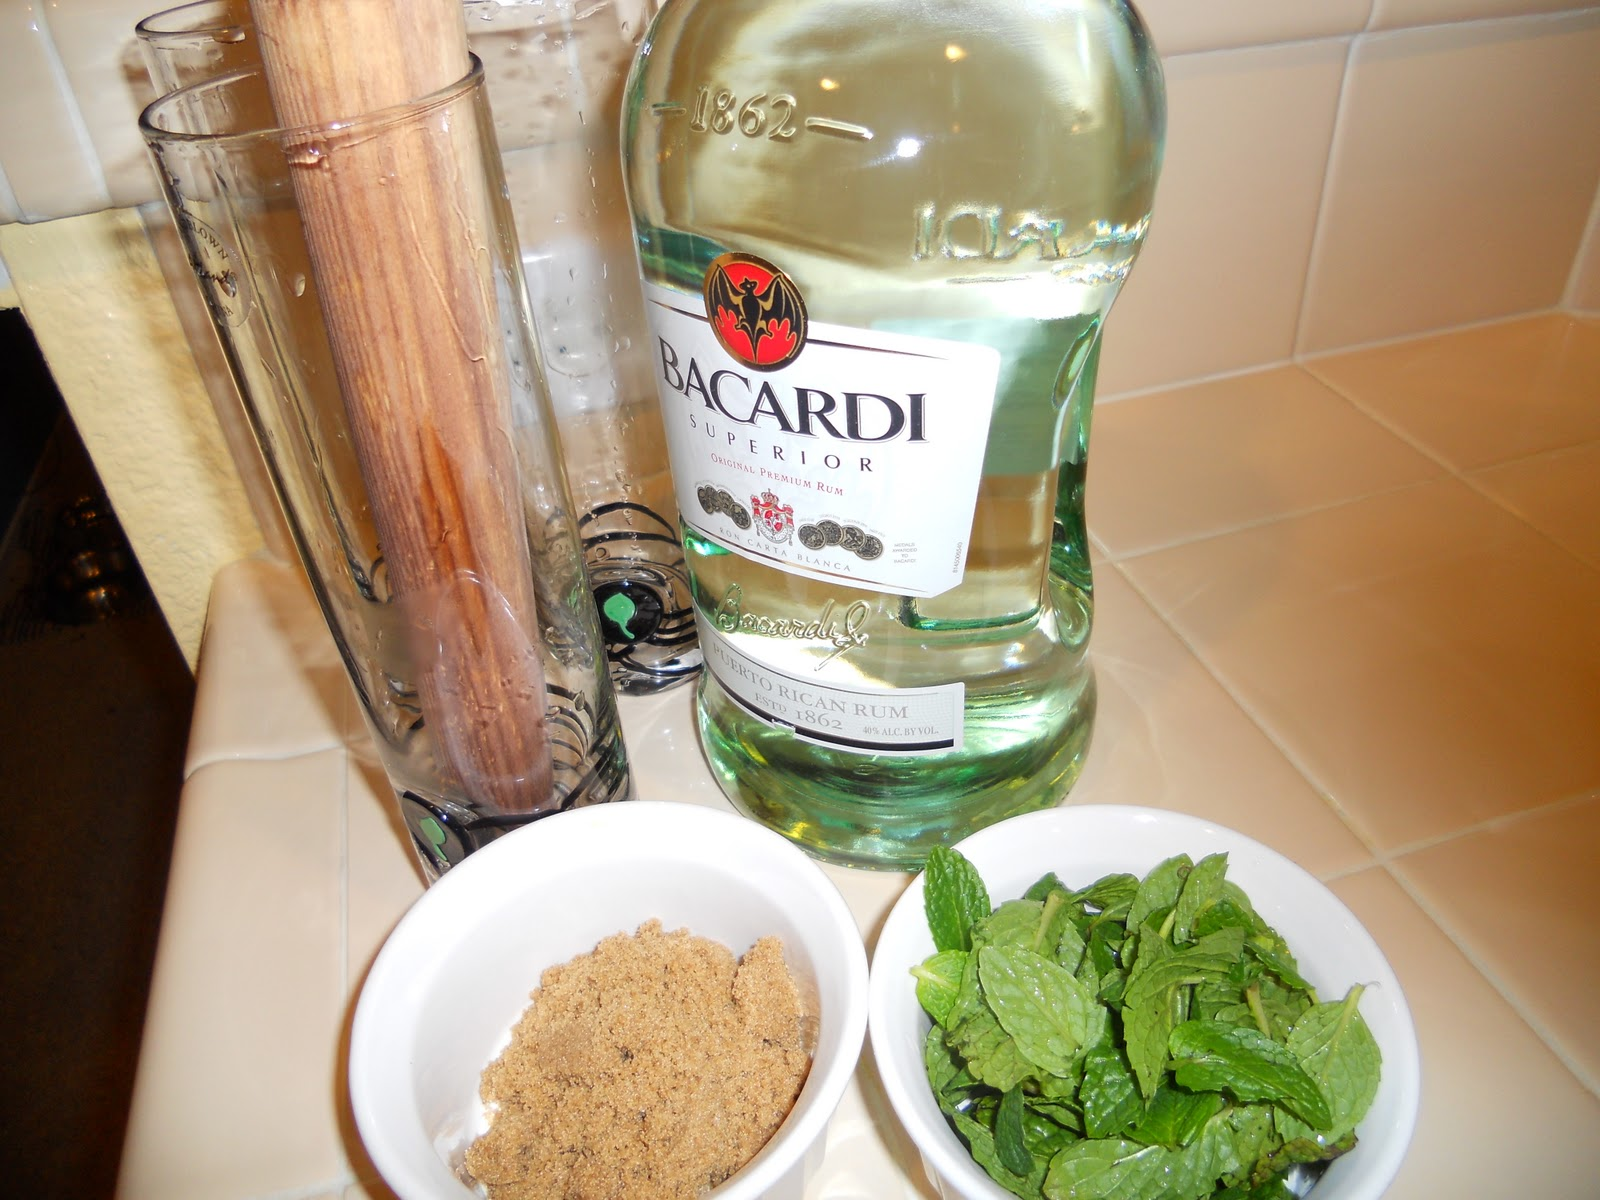 Bacardi Mojito - how to cook, drink, enjoy